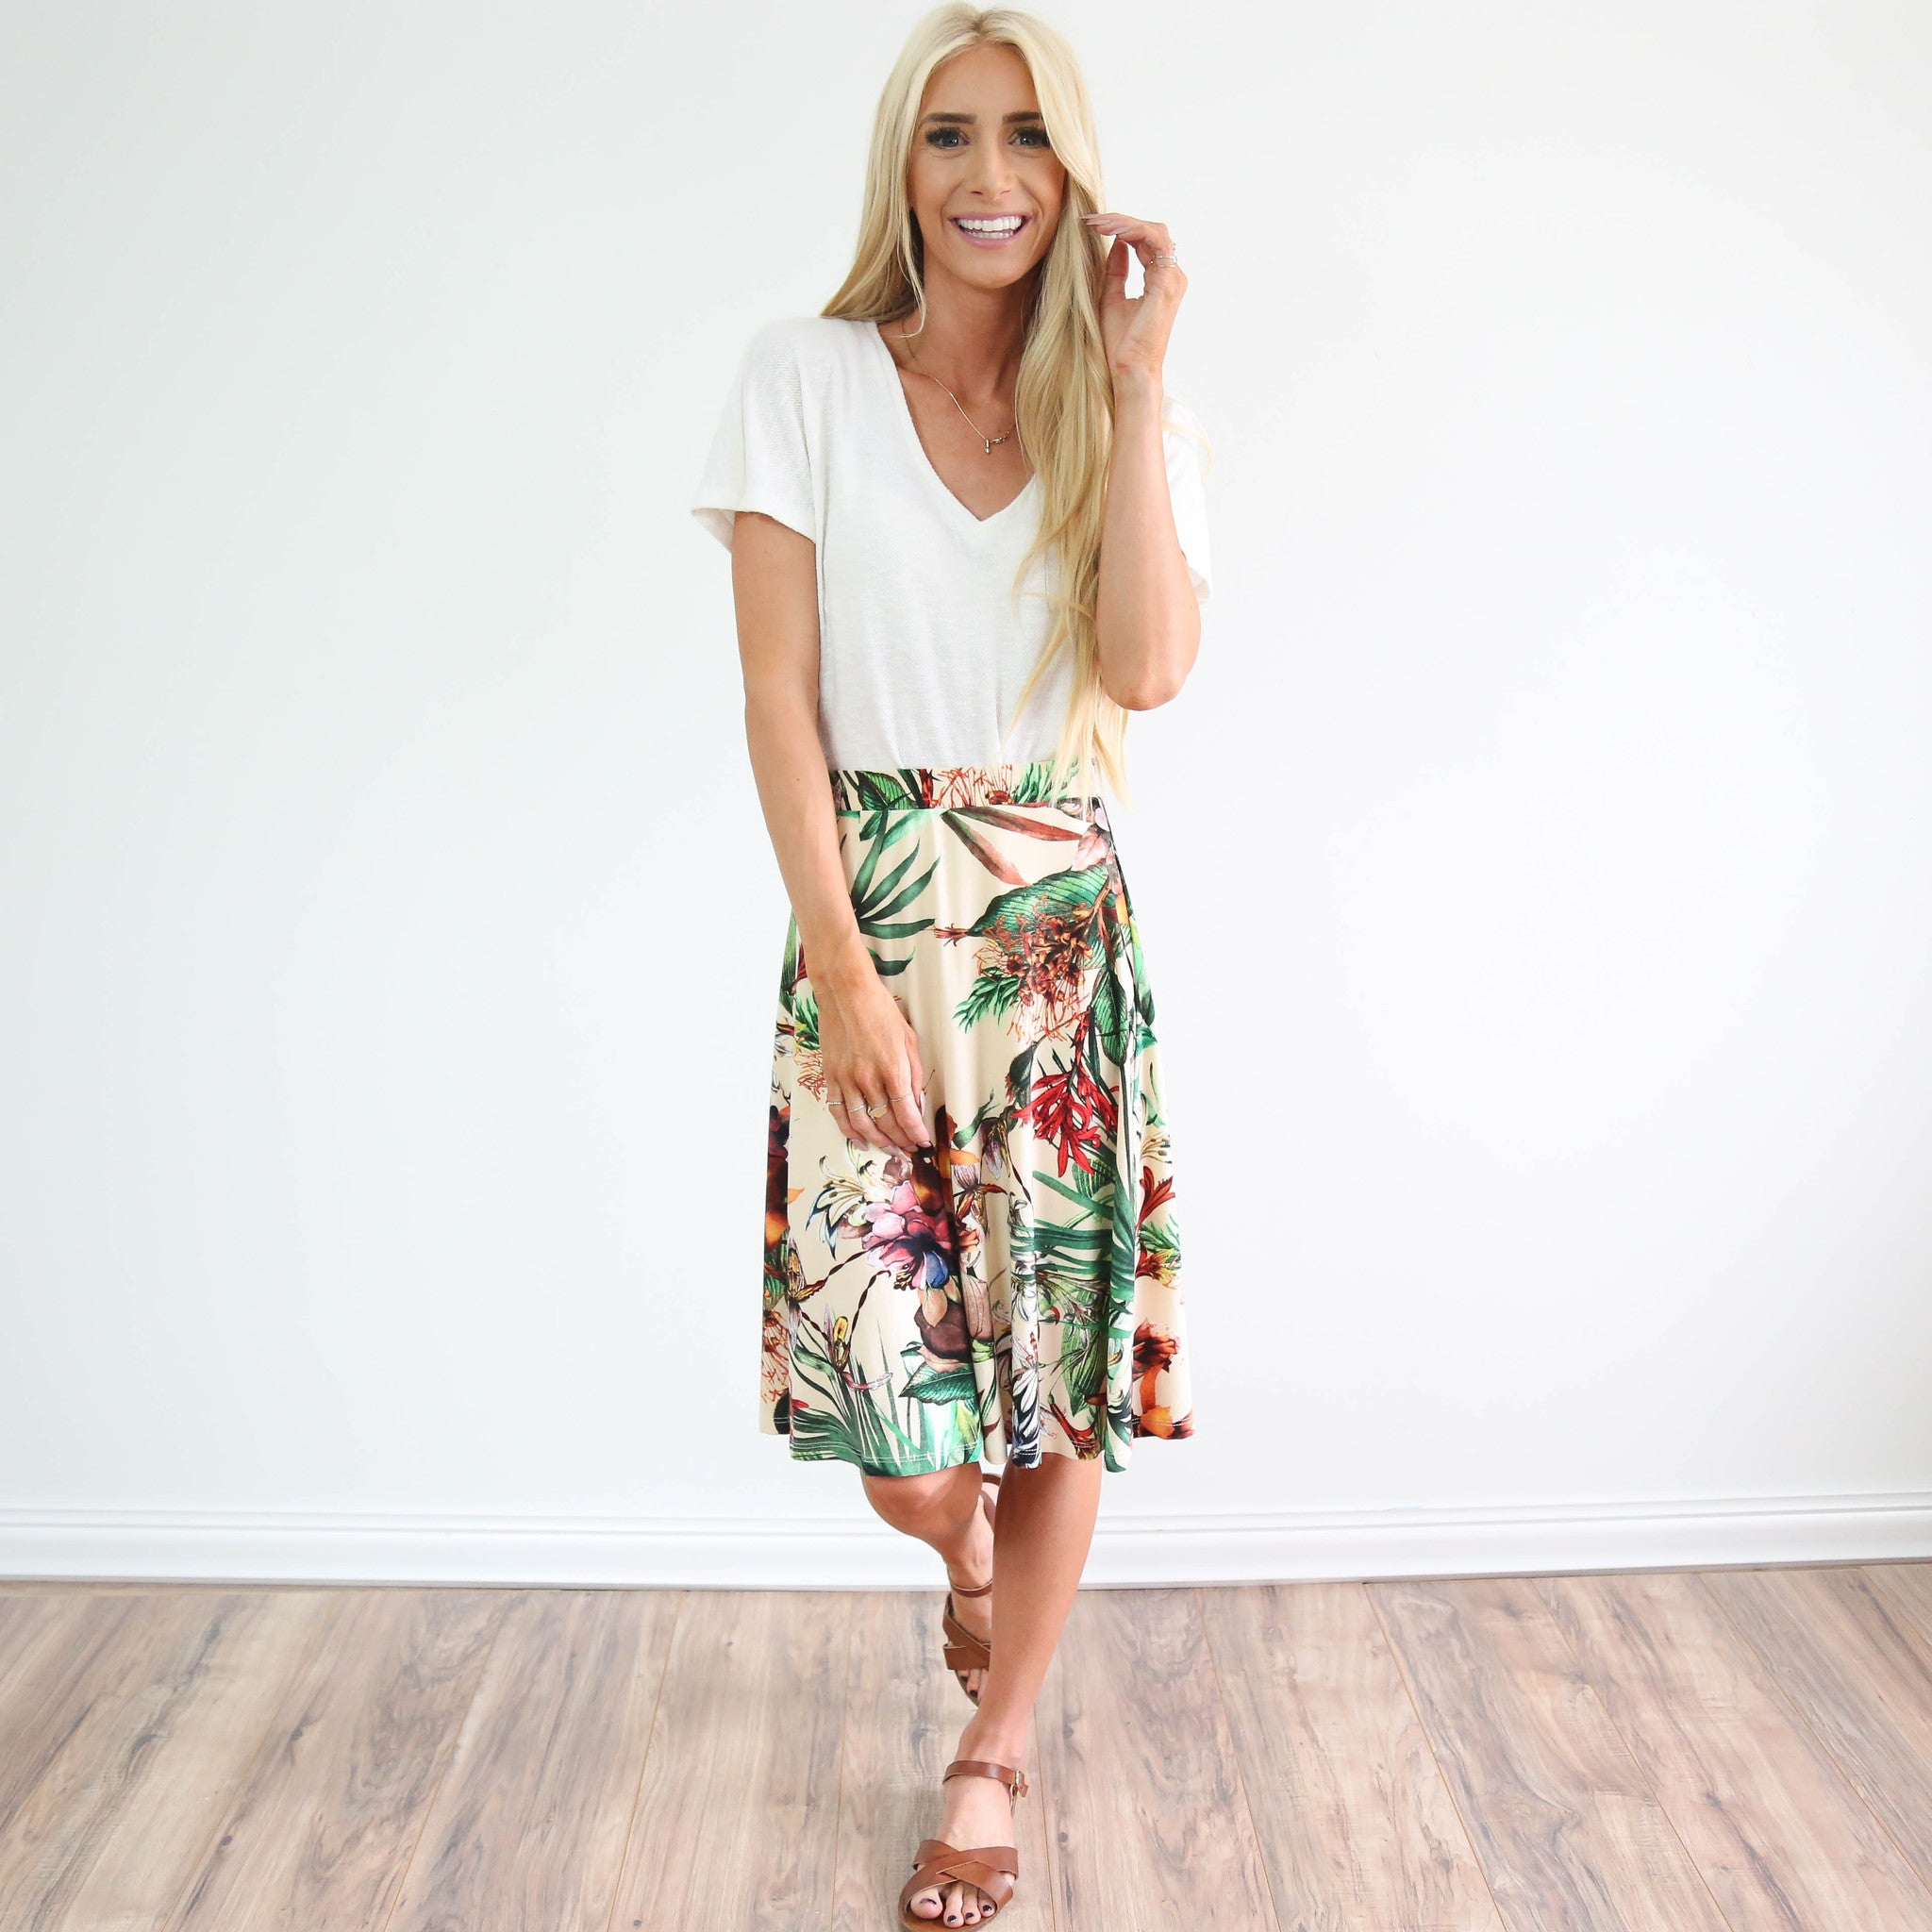 Boardwalk Skirt